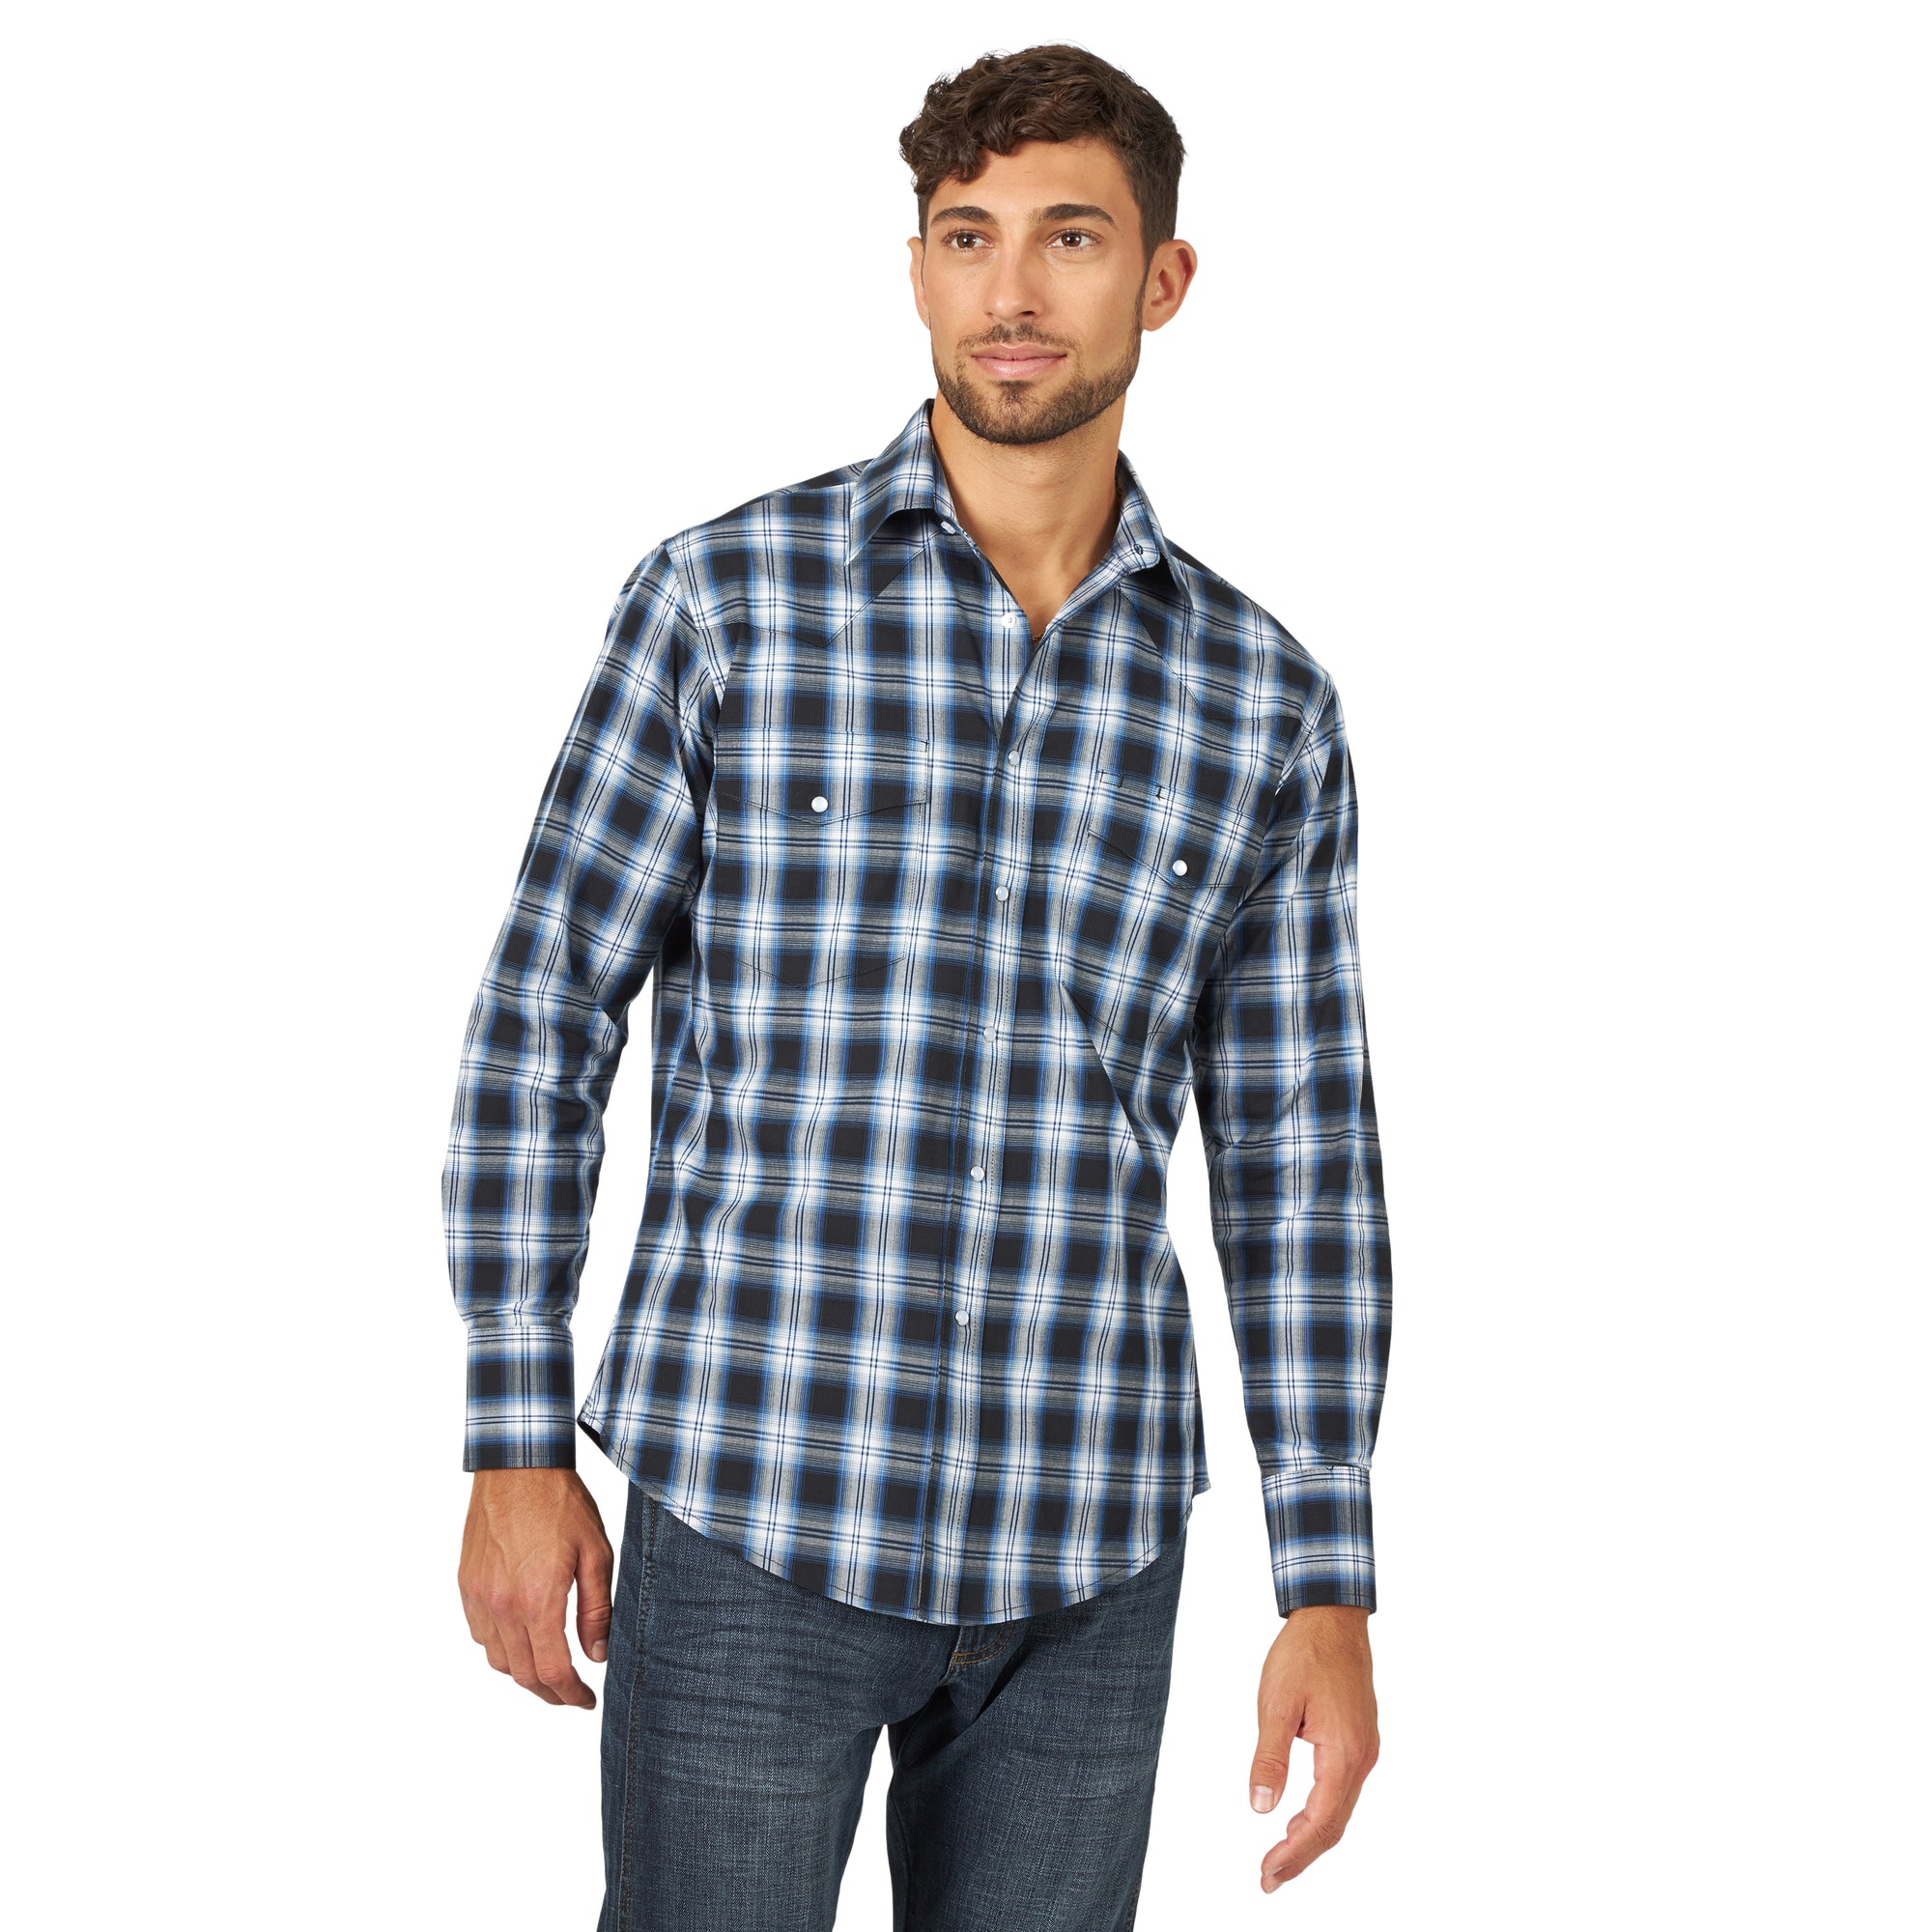 Wrangler Men's Wrinkle Resist Western Shirt Blue/Black